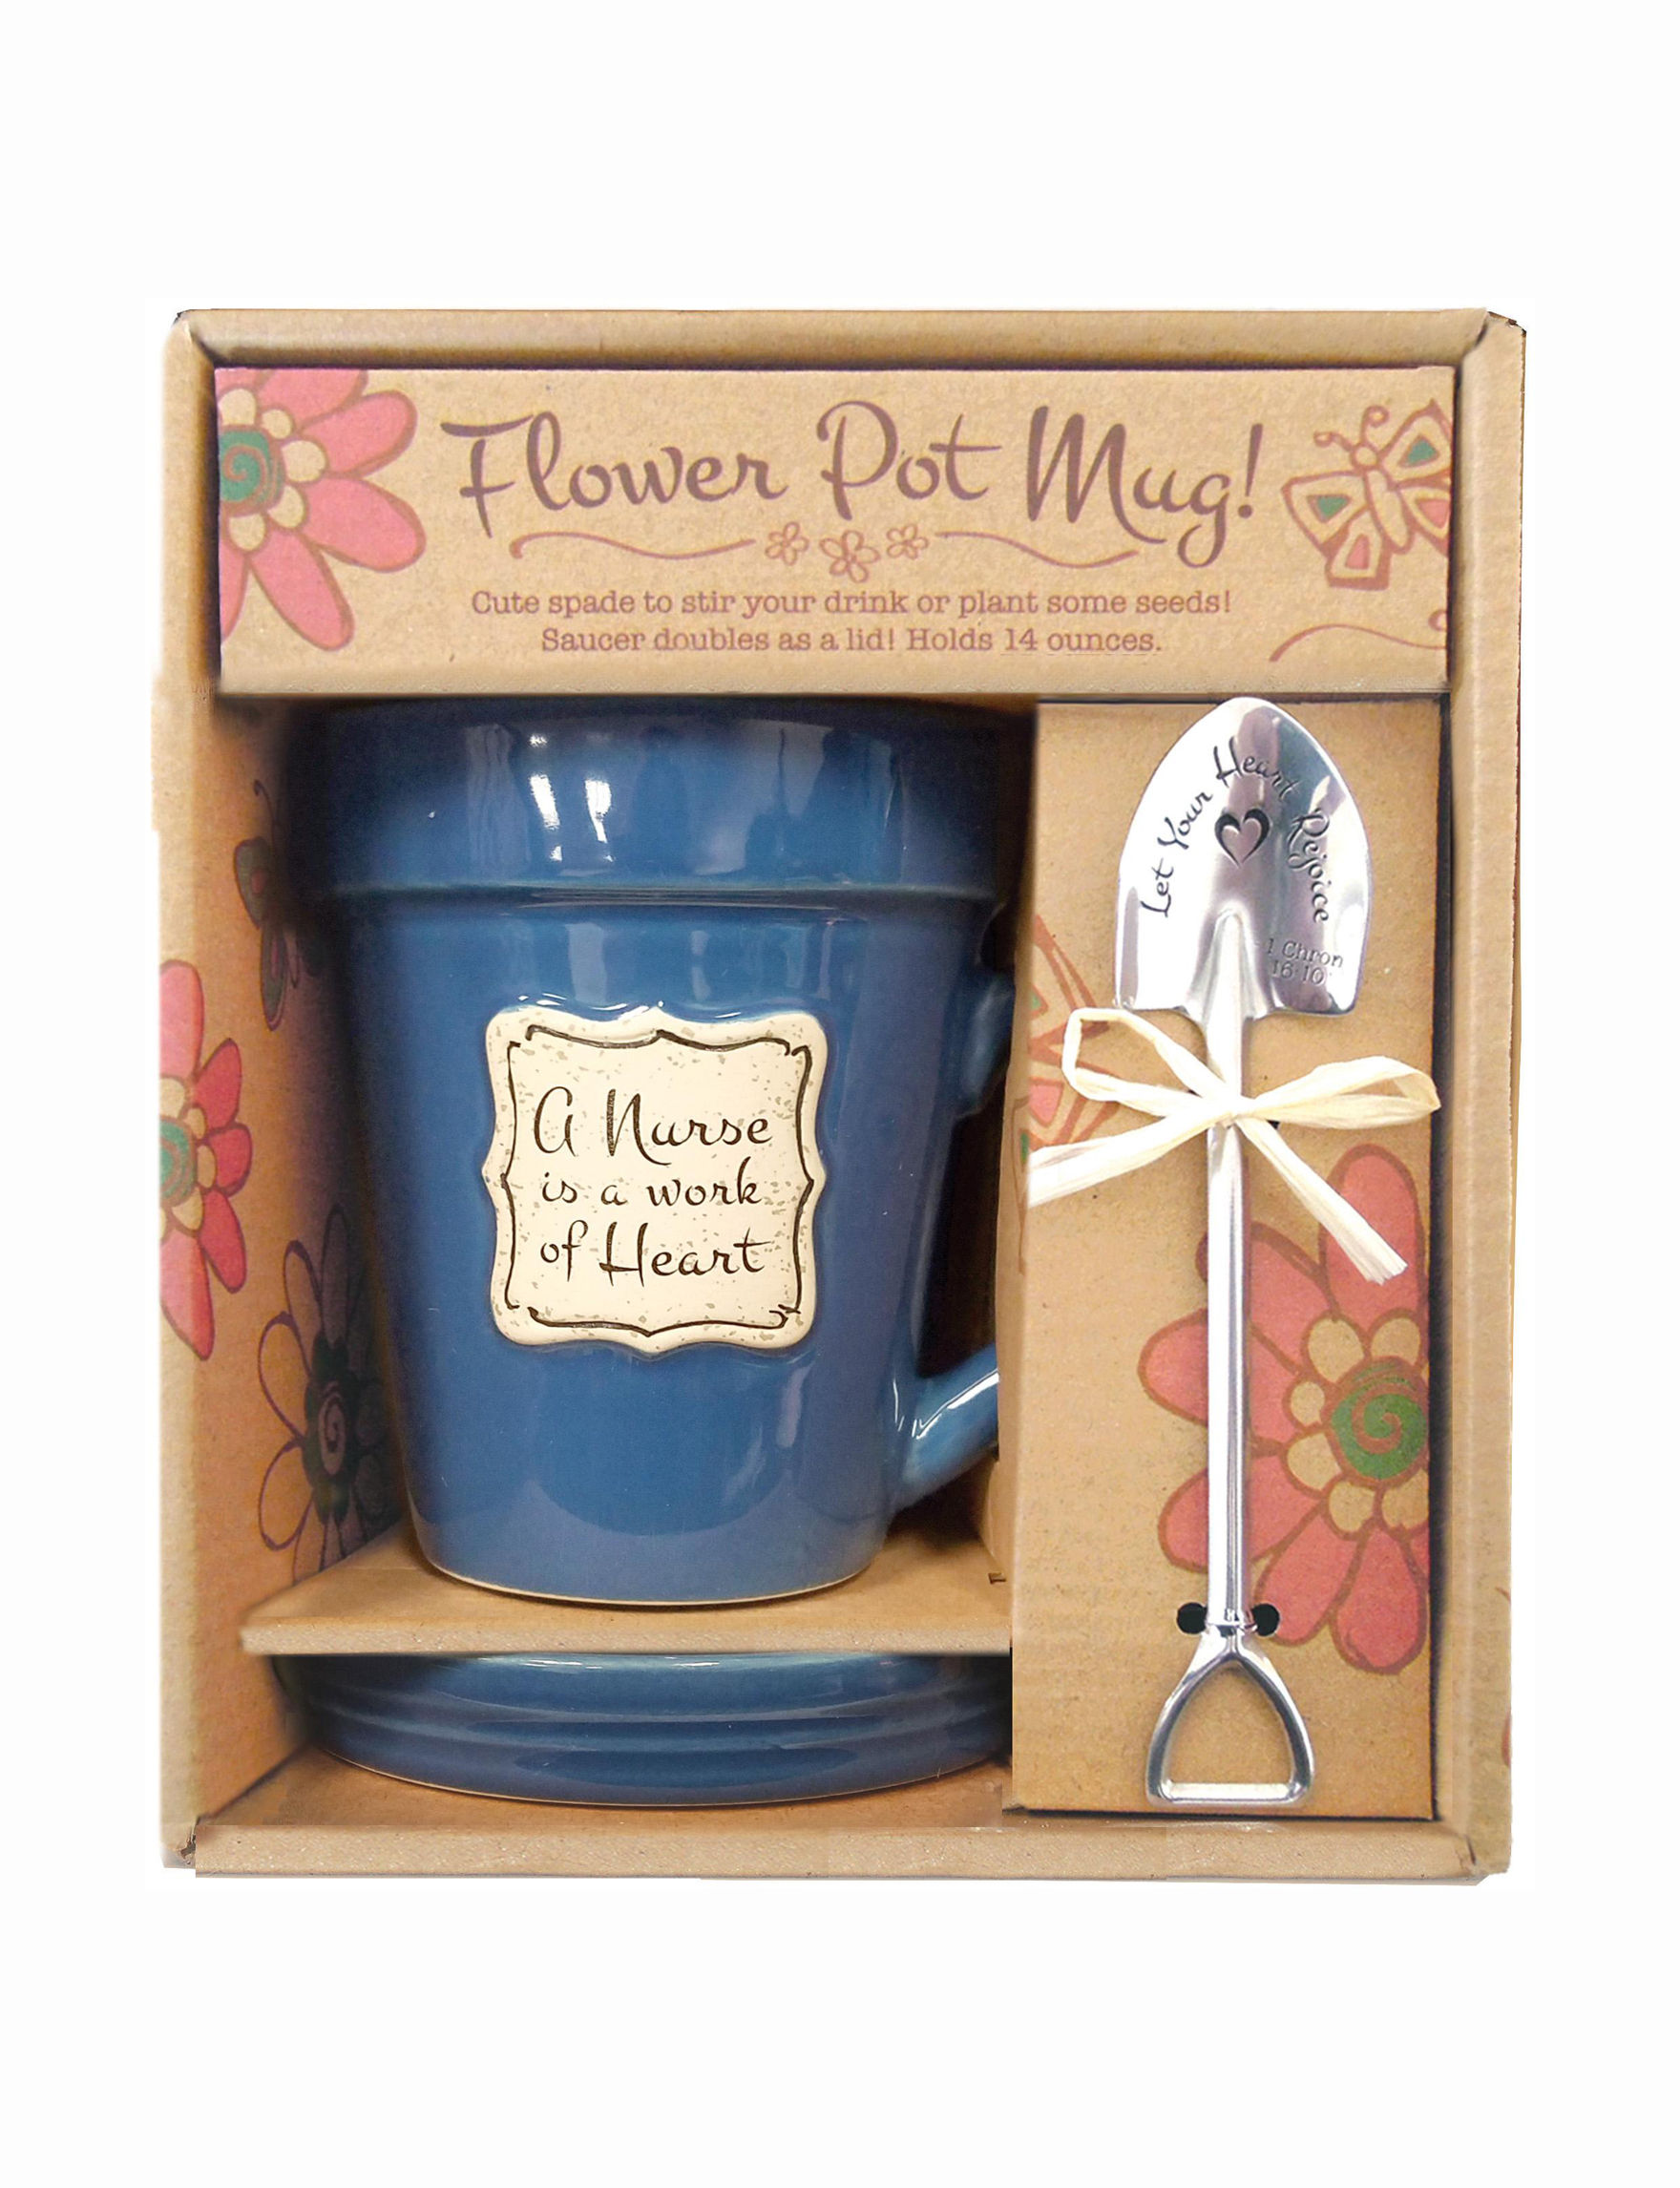 Divinity Blue Garden Decor & Planters Mugs Drinkware Outdoor Decor